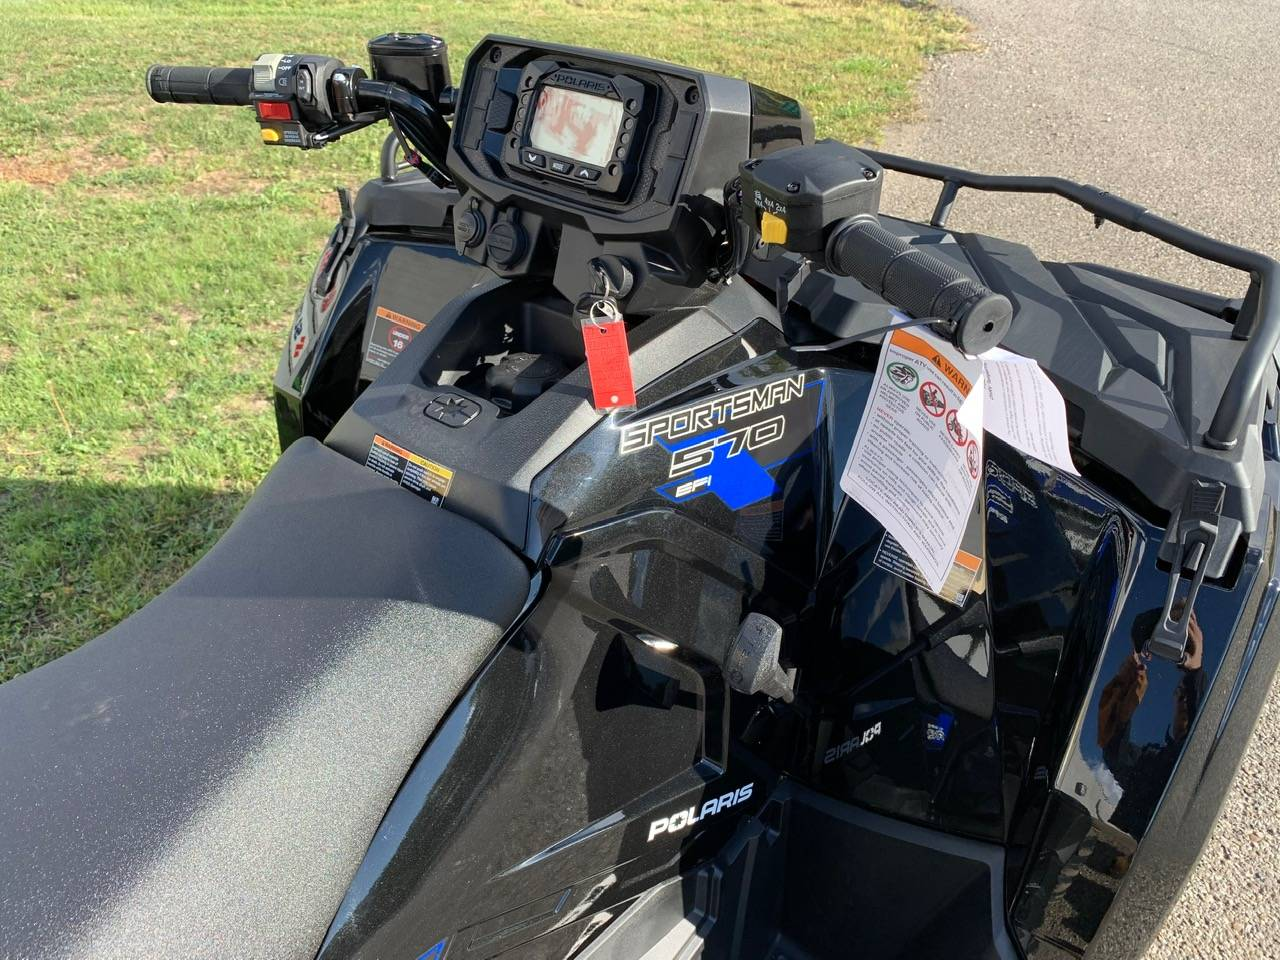 2021 Polaris Sportsman 570 Trail in Brilliant, Ohio - Photo 21